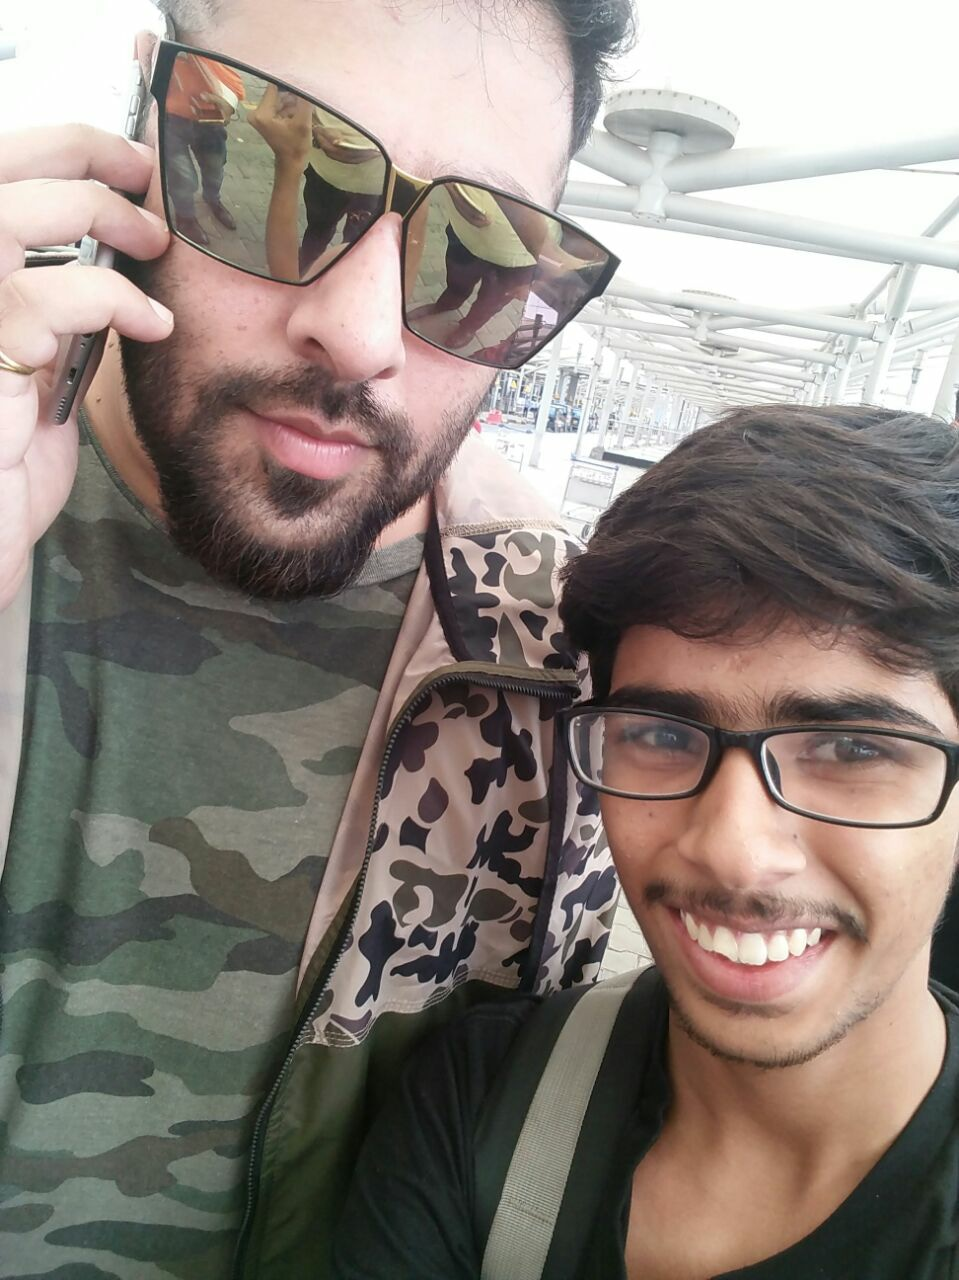 haha, does he need any introduction, when I landed in Delhi, I see him. Though not a fan, but still :p